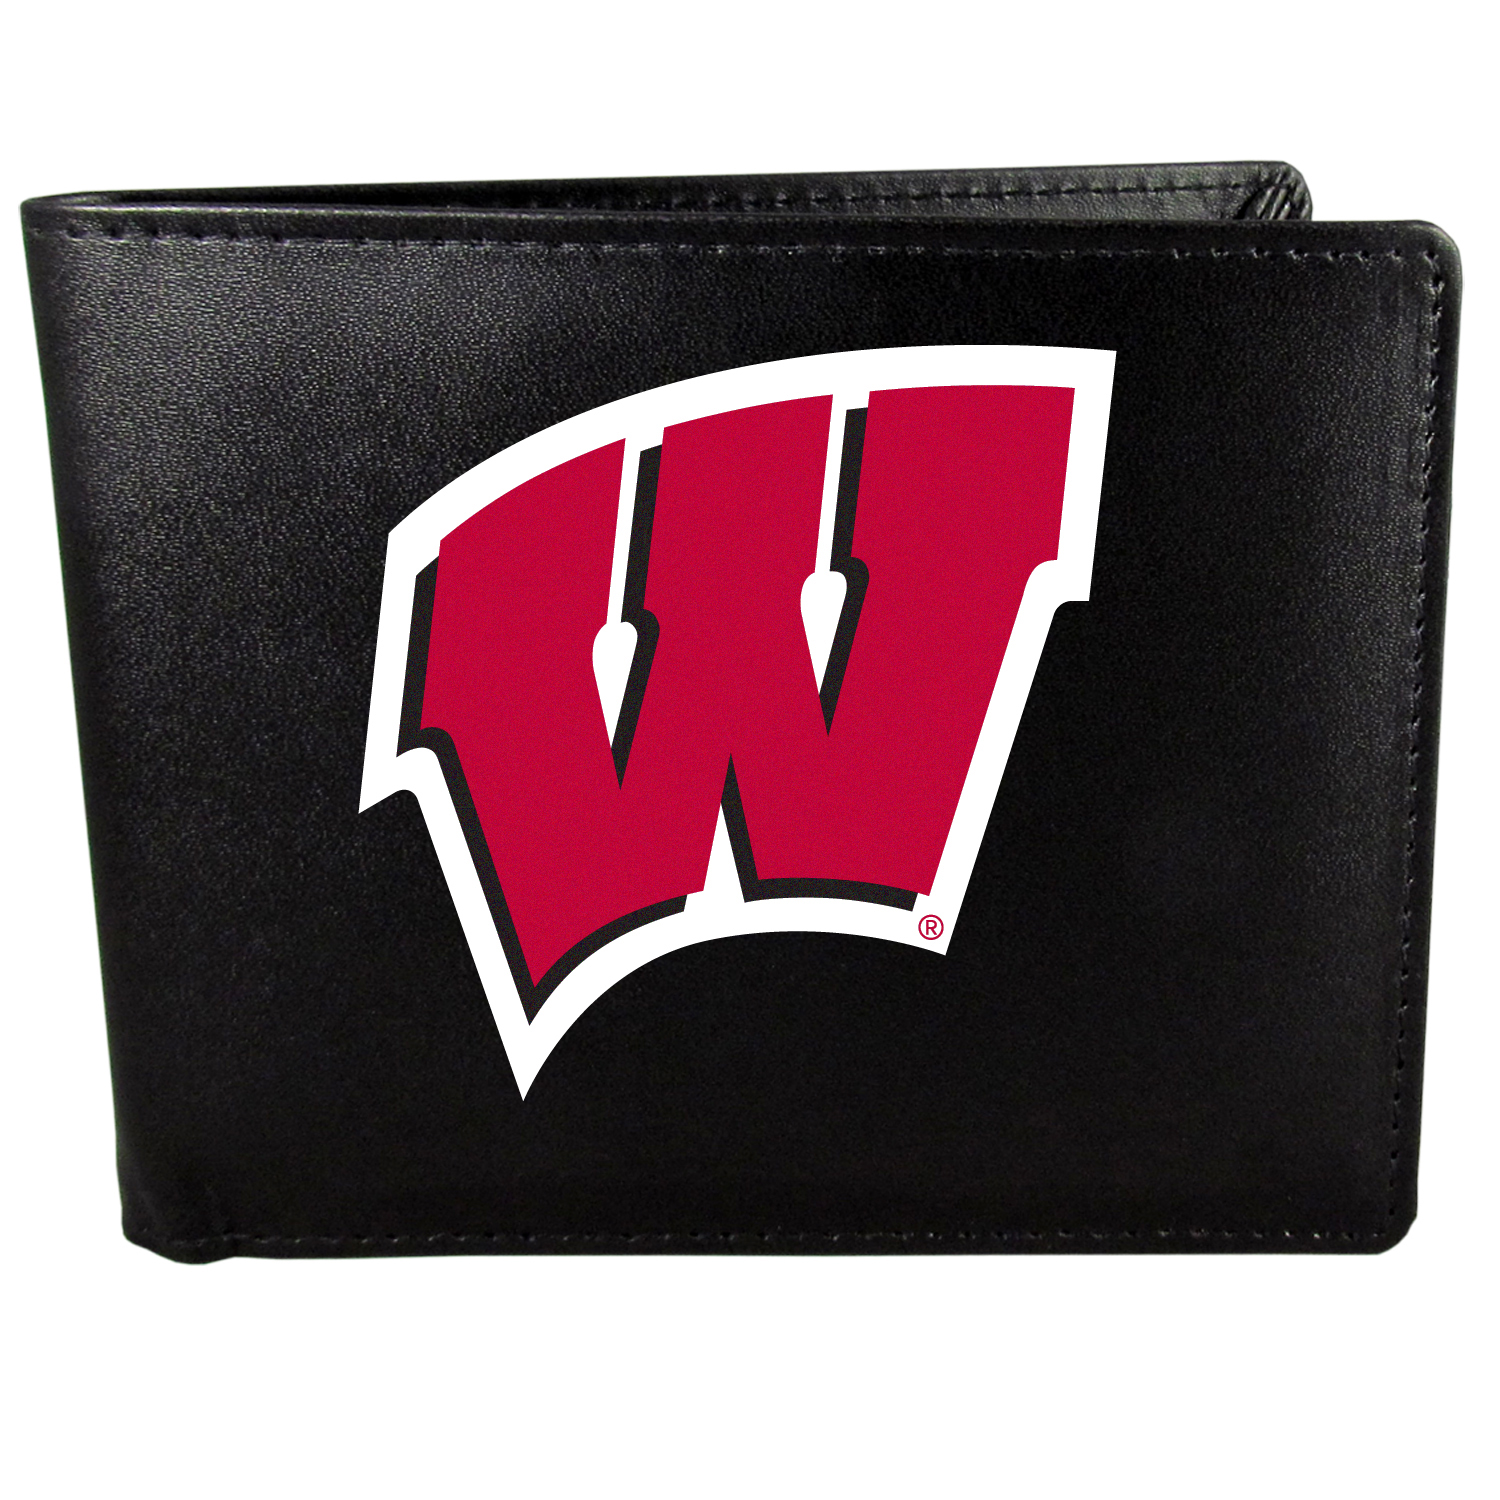 Wisconsin Badgers Bi-fold Wallet Large Logo - Sports fans do not have to sacrifice style with this classic bi-fold wallet that sports the Wisconsin Badgers extra large logo. This men's fashion accessory has a leather grain look and expert craftmanship for a quality wallet at a great price. The wallet features inner credit card slots, windowed ID slot and a large billfold pocket. The front of the wallet features a printed team logo.